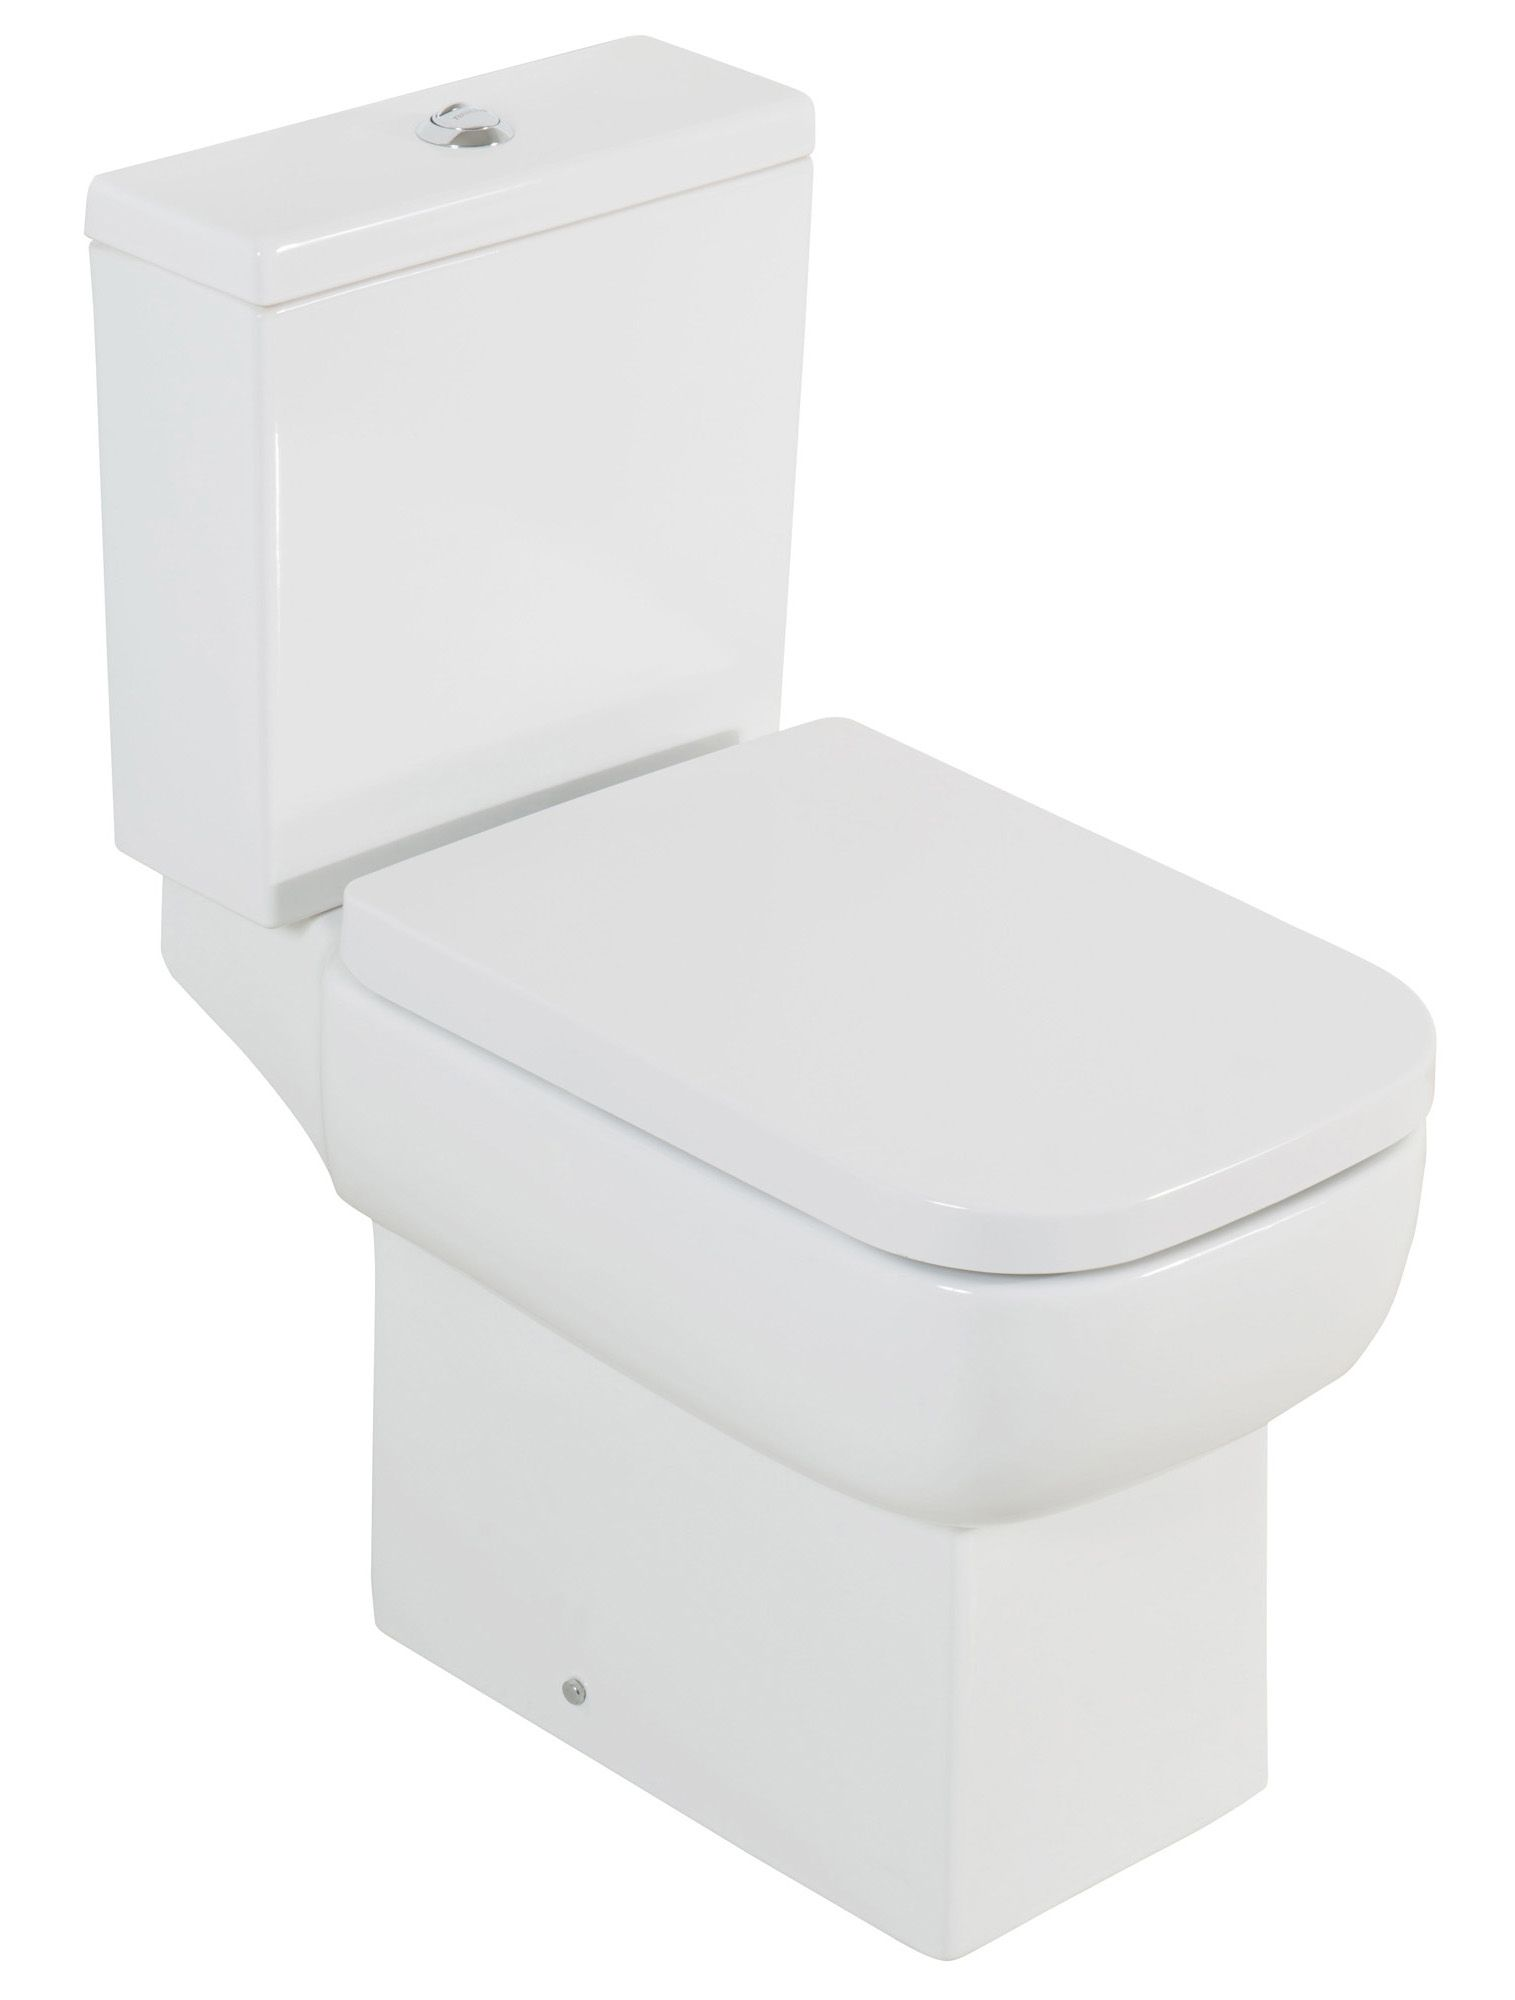 cooke lewis fabian close coupled toilet with soft close seat departments diy at b q. Black Bedroom Furniture Sets. Home Design Ideas